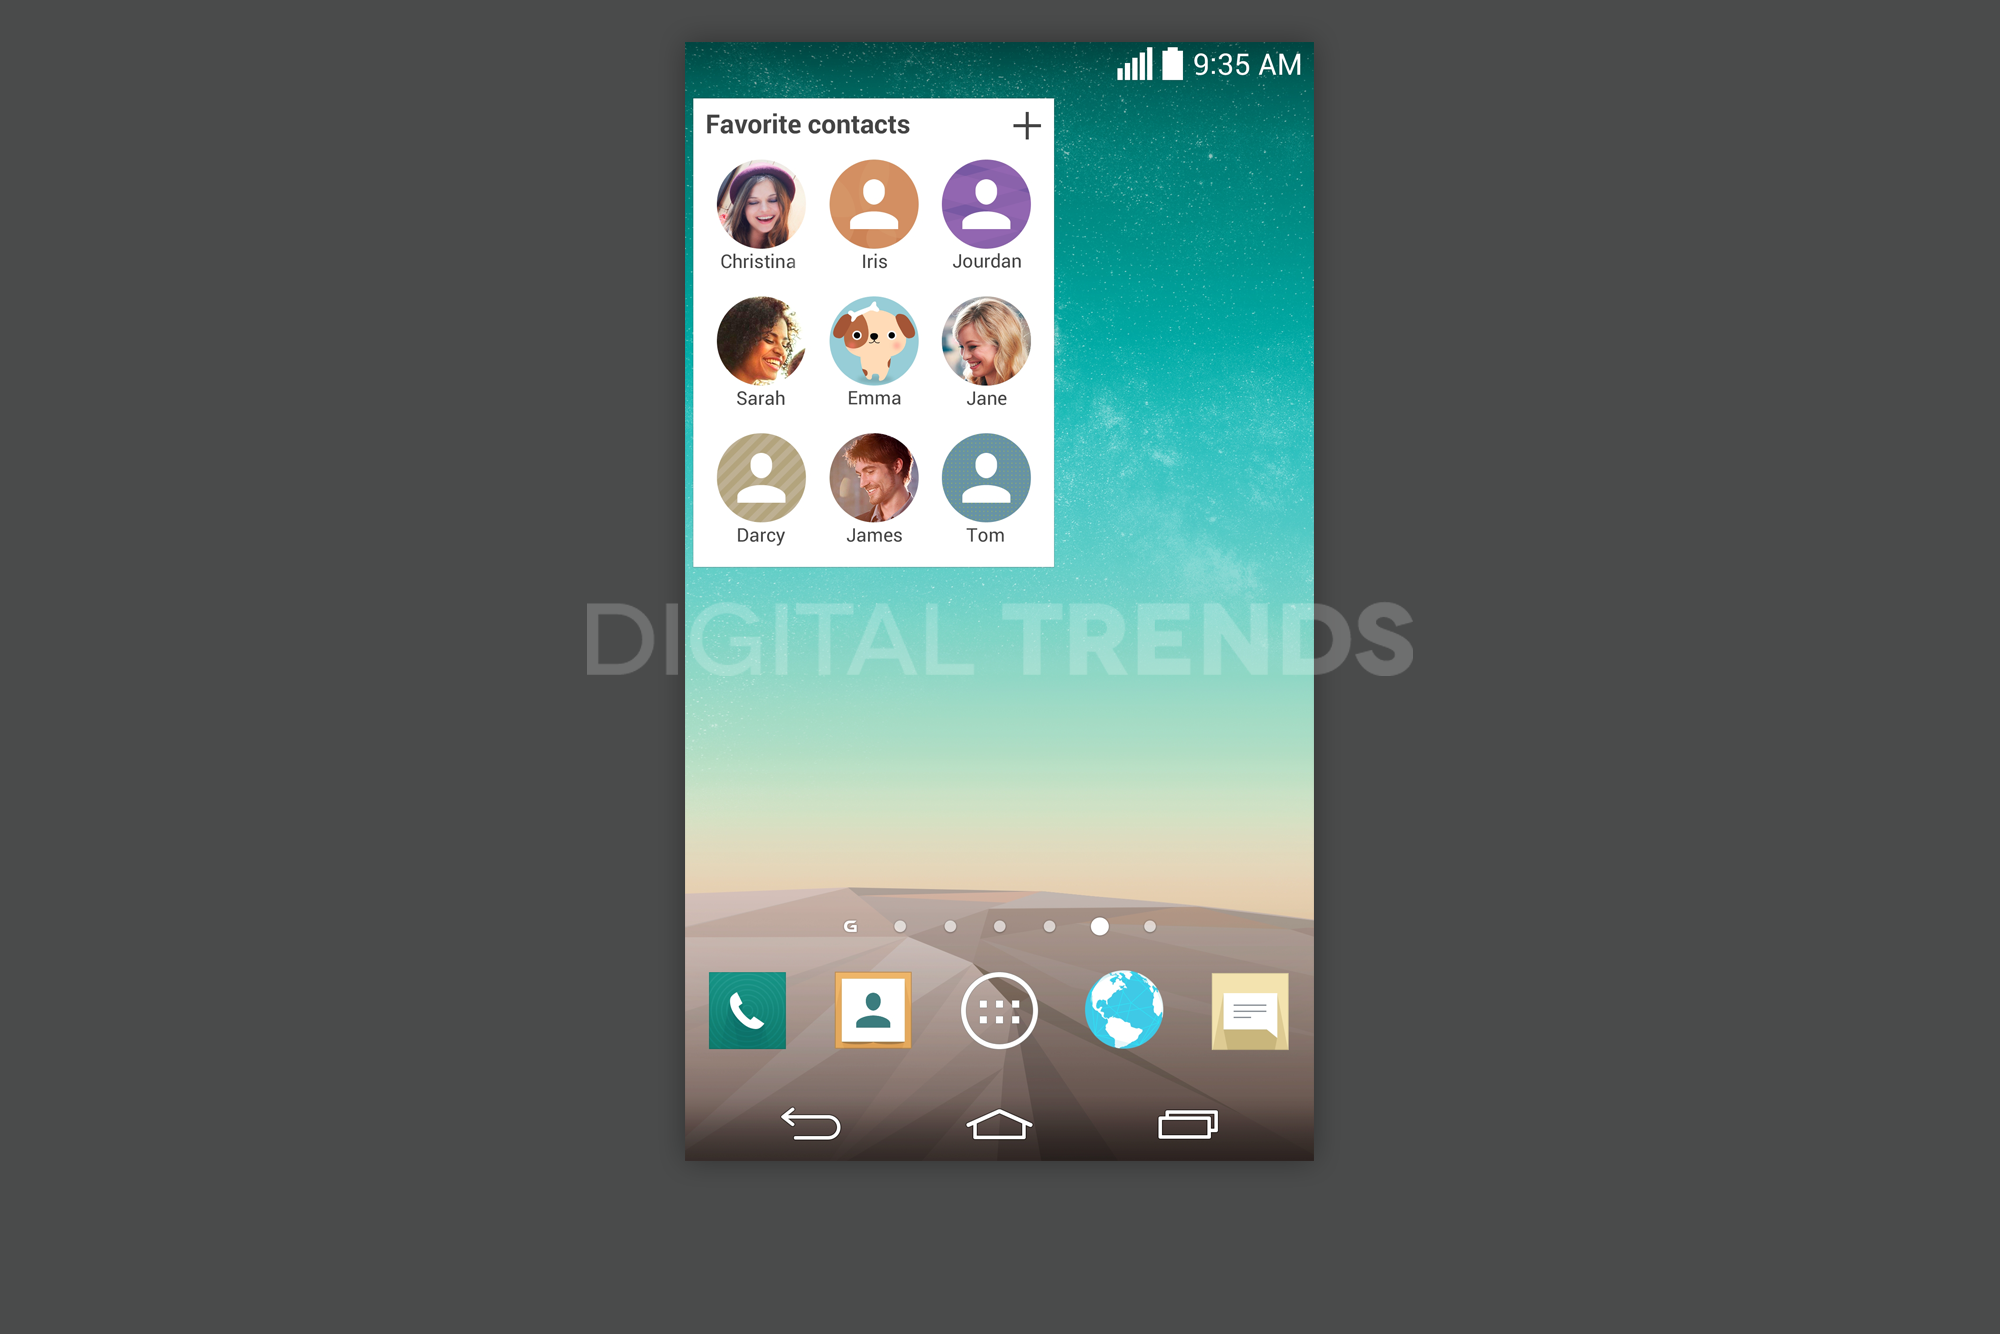 lg-g3-favorite-contacts-2000x1334